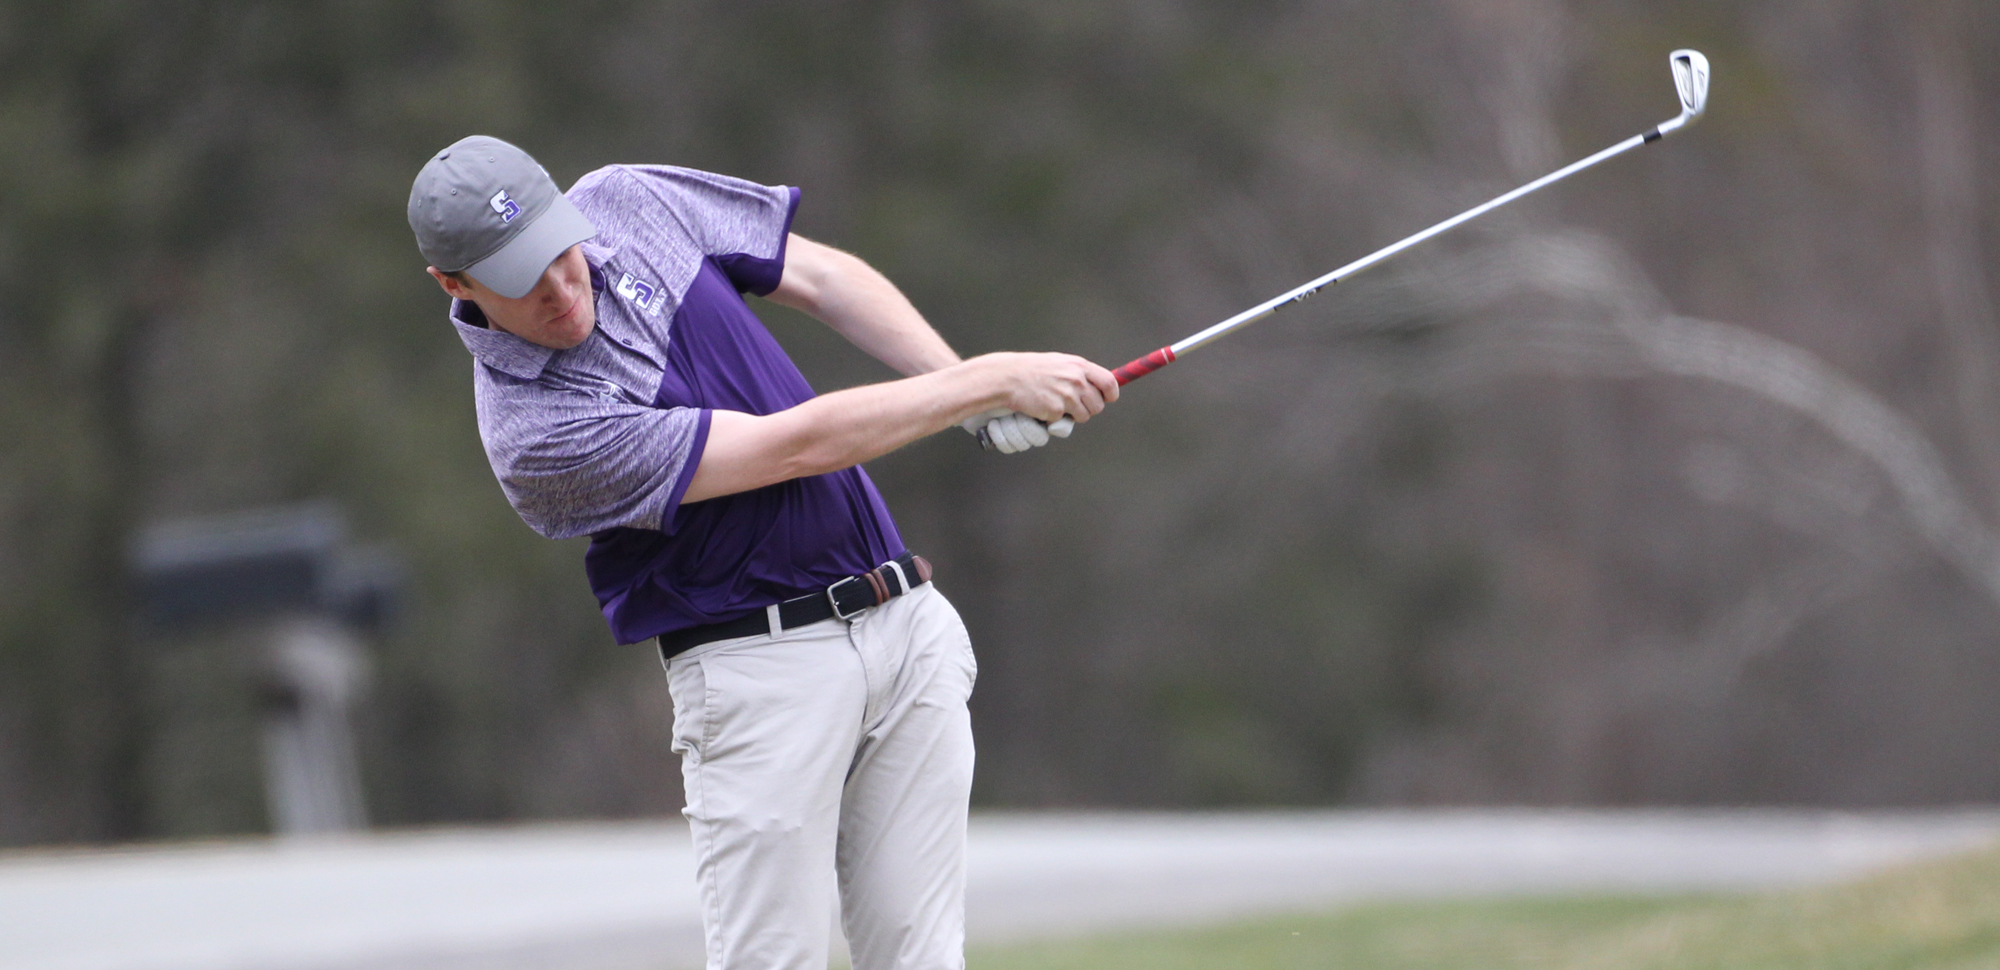 Senior Michael Boland became the fourth Royal in school history to win a conference championship in men's golf when he won the Landmark Conference title on Sunday.